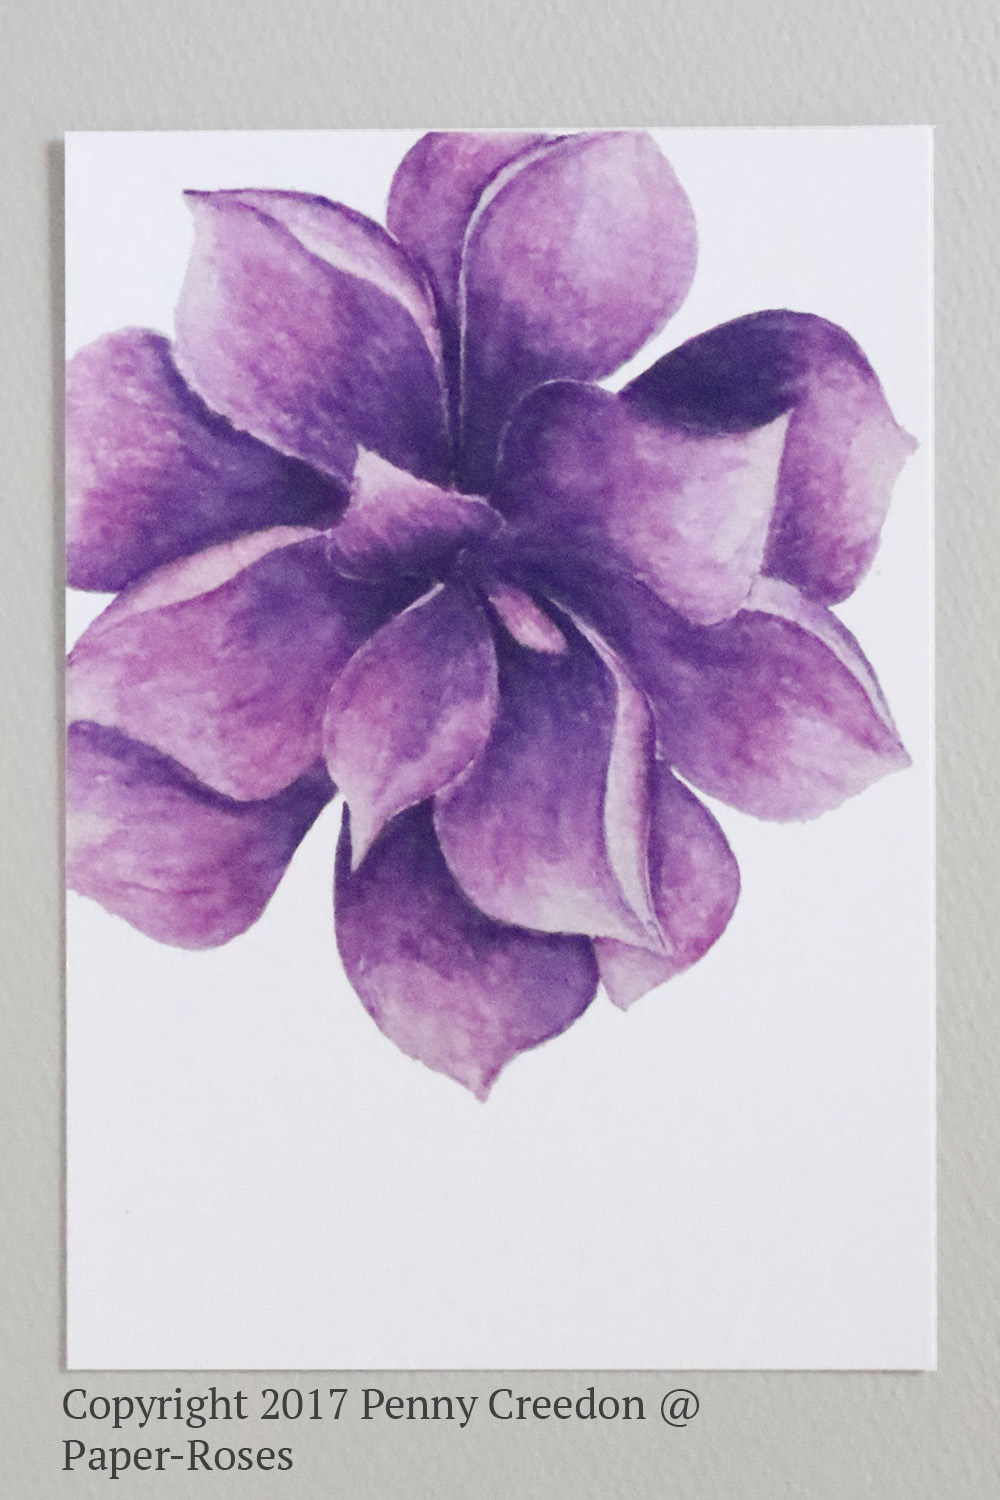 Paper-Roses | Note Cards | Succulent 3 note card